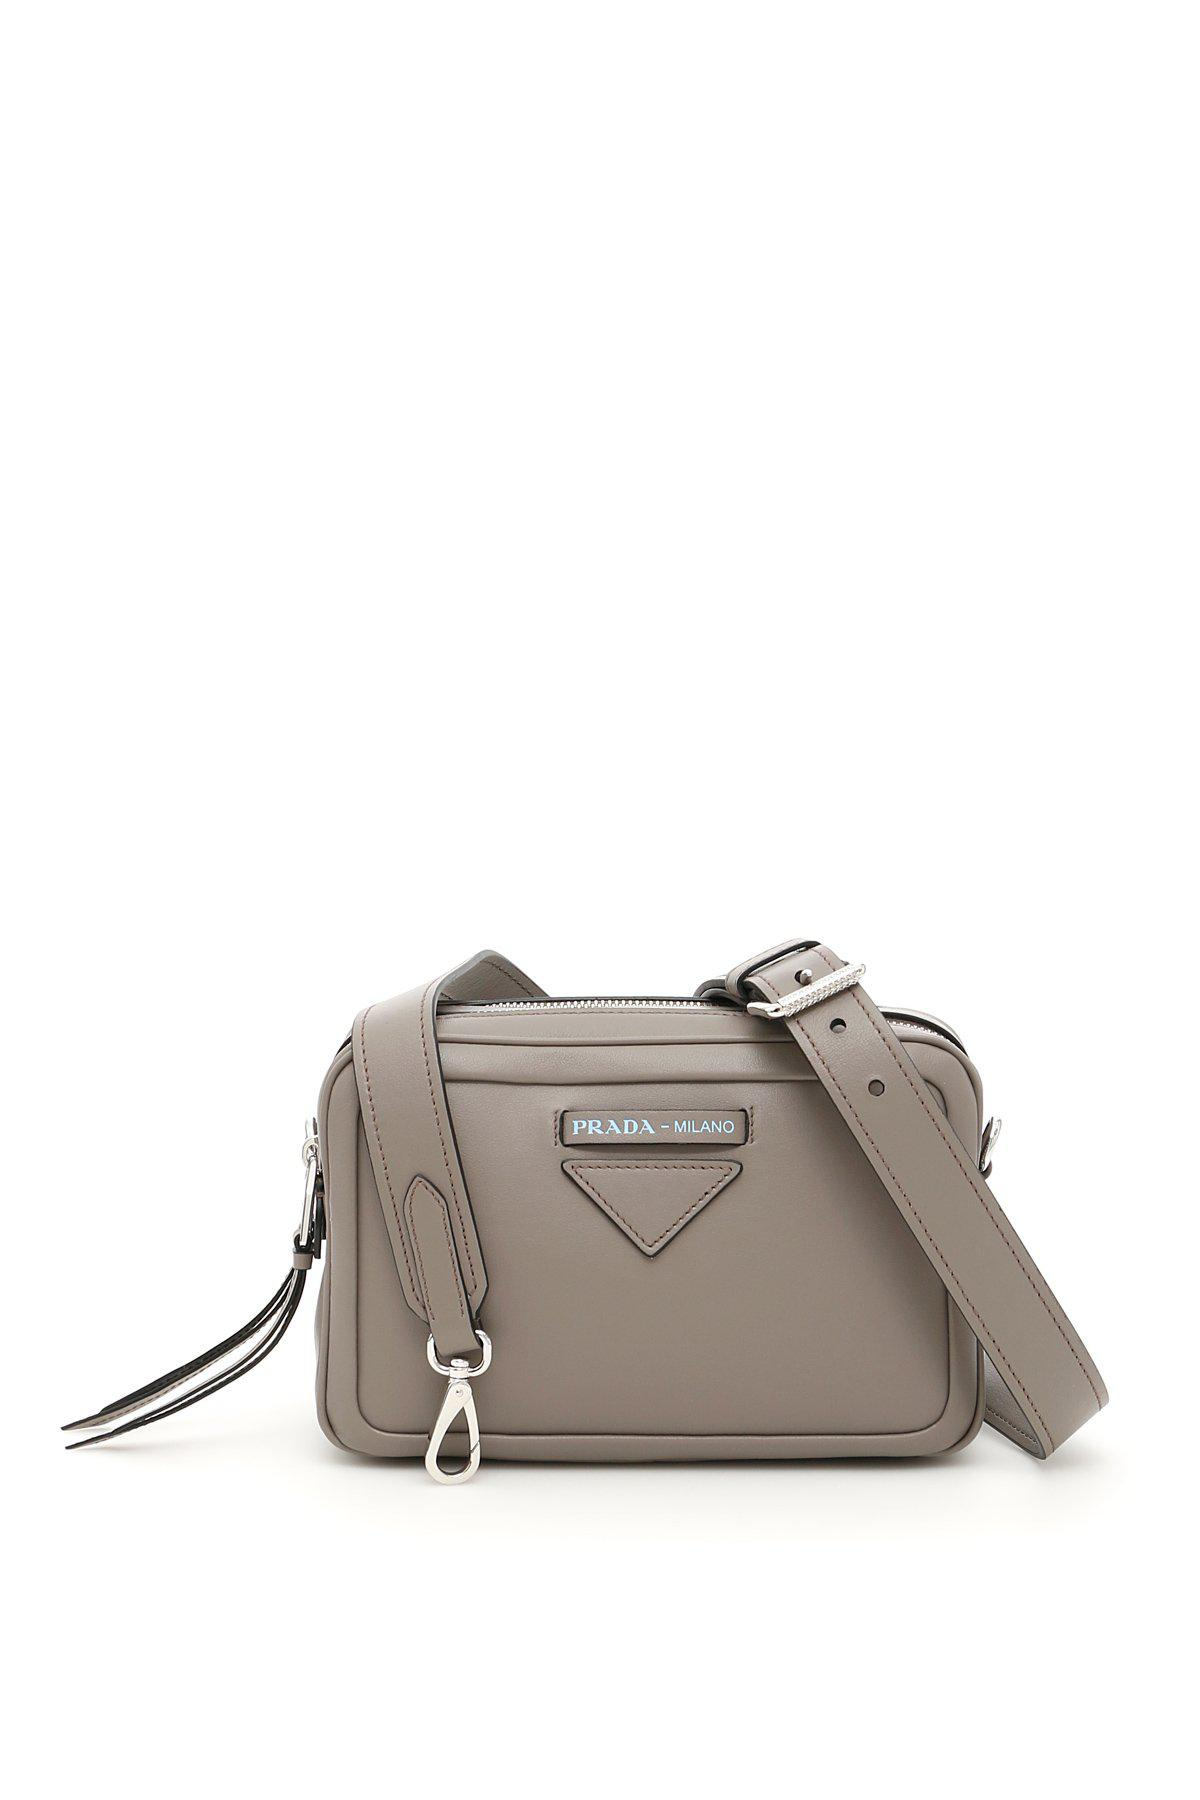 f455d43ac8870d Prada Zip Around Shoulder Bag in Metallic - Lyst